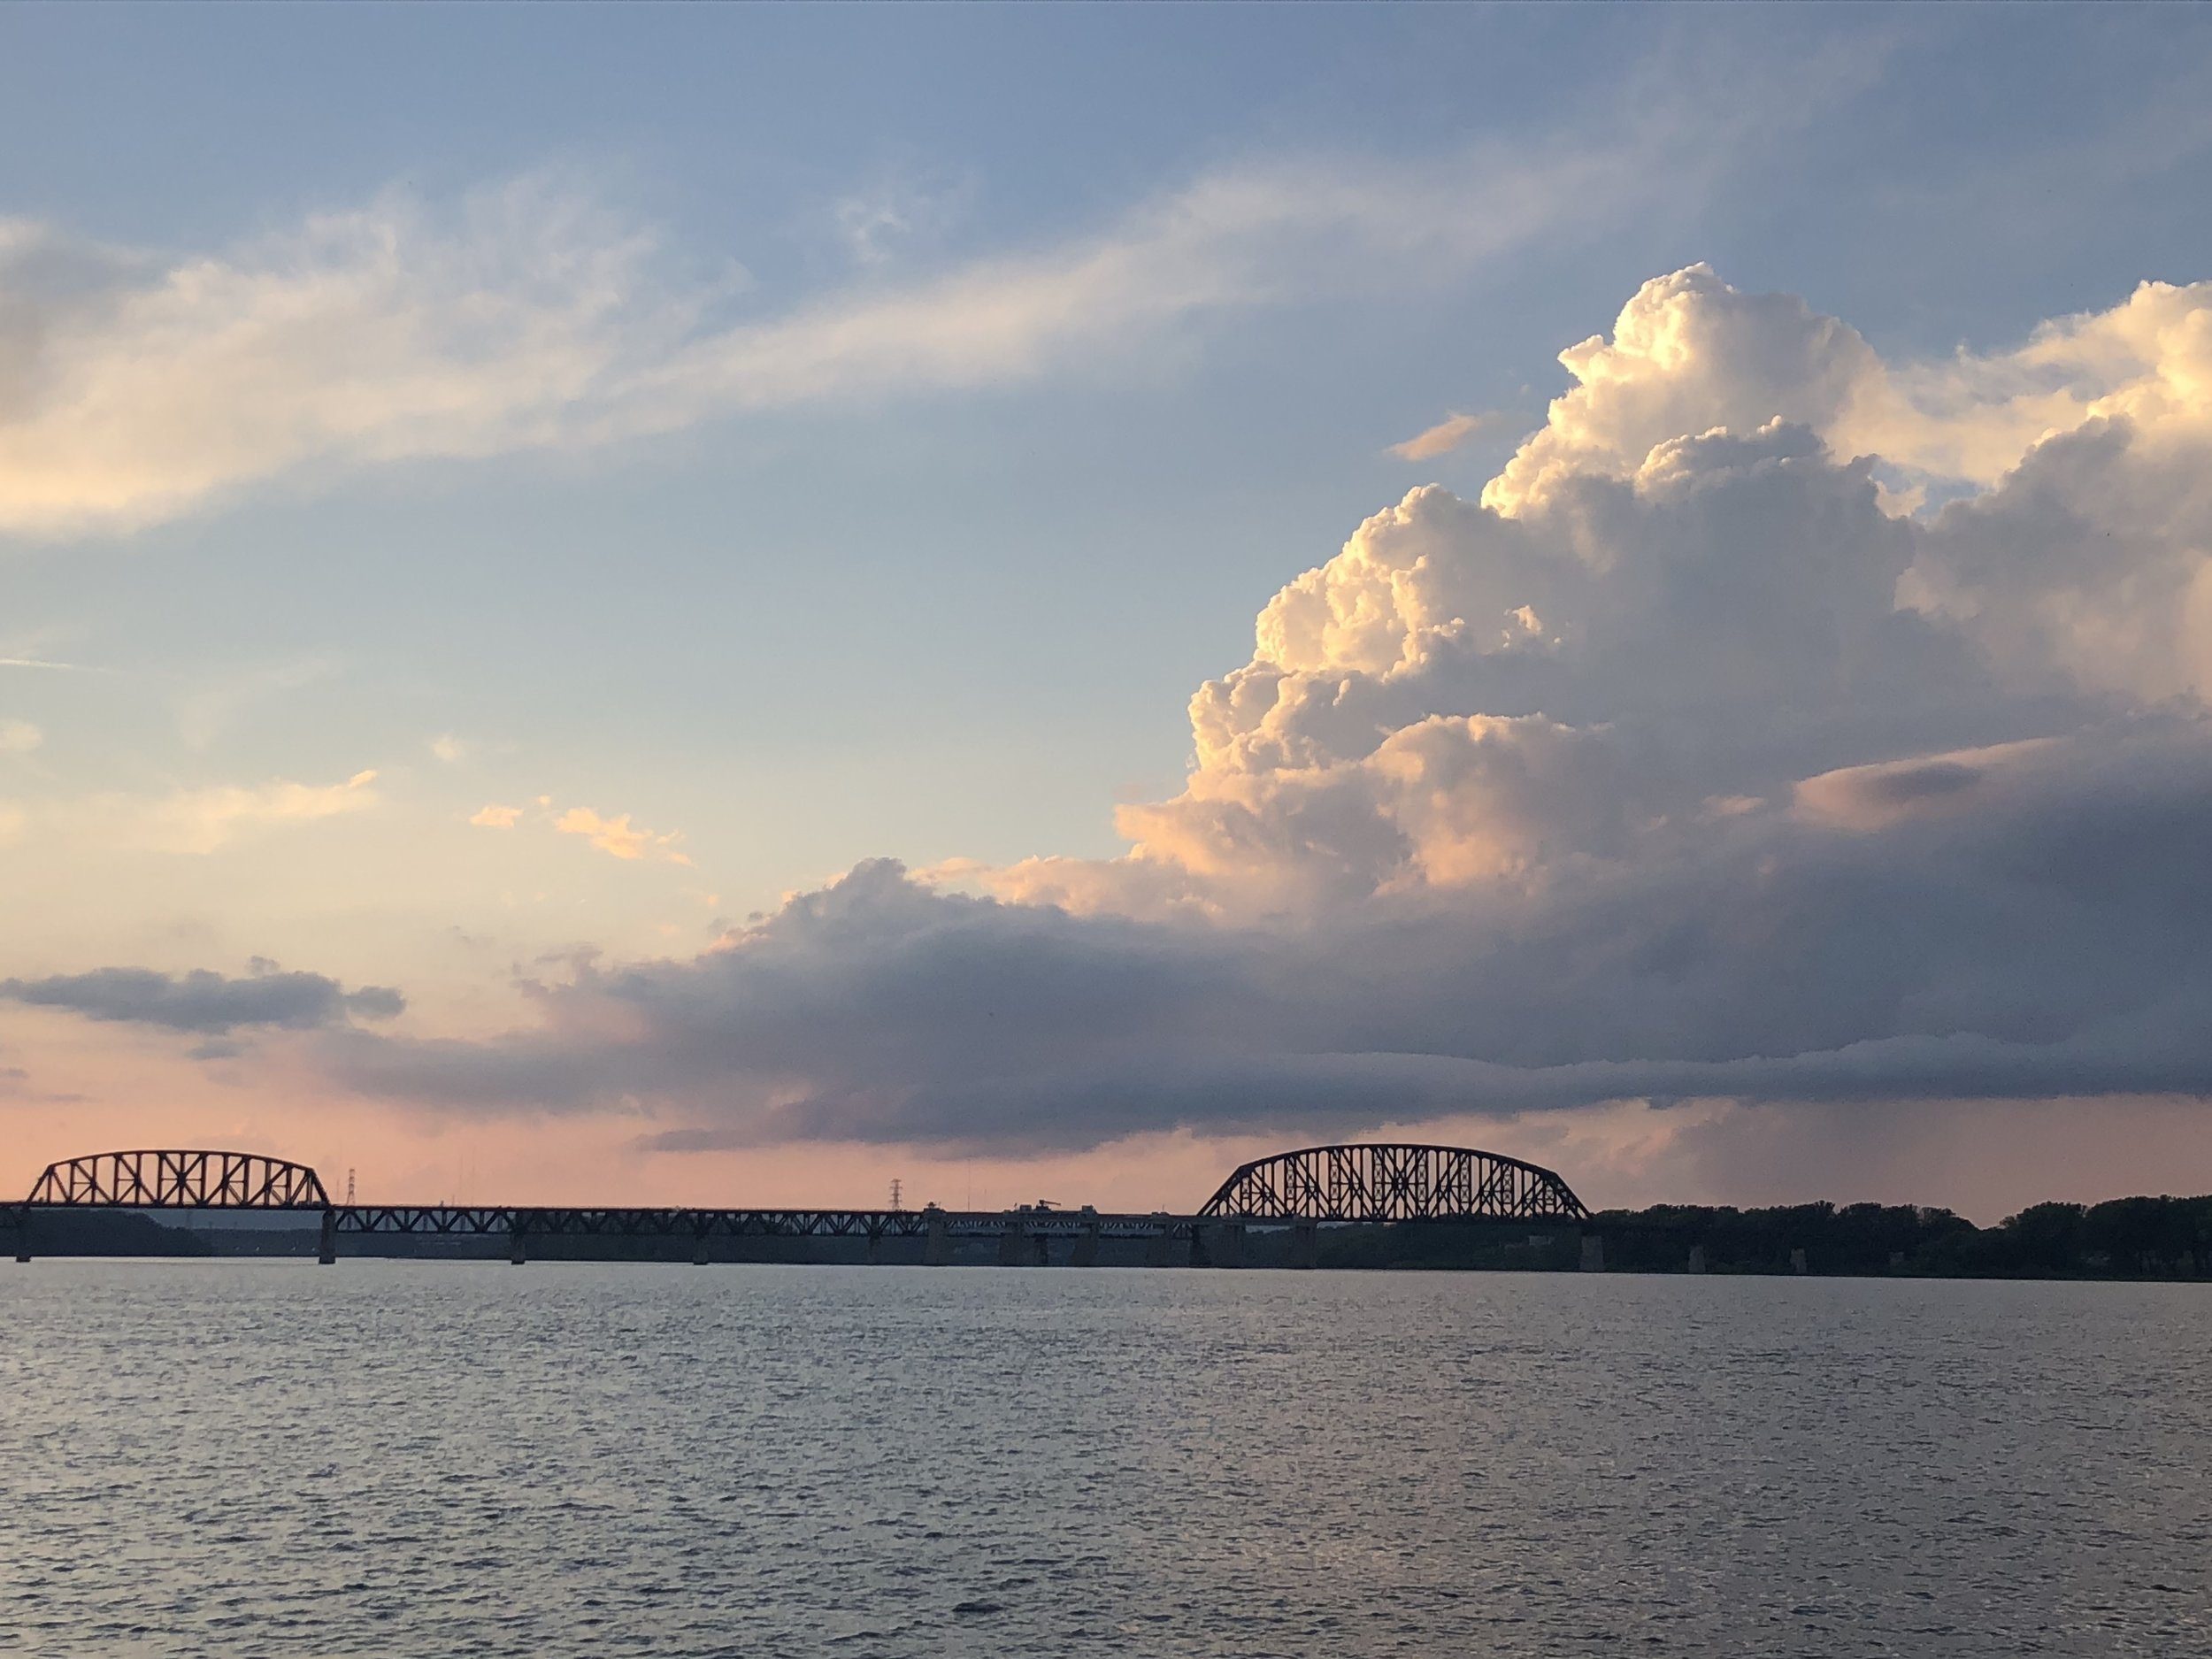 On the banks of the Ohio River, Louisville.